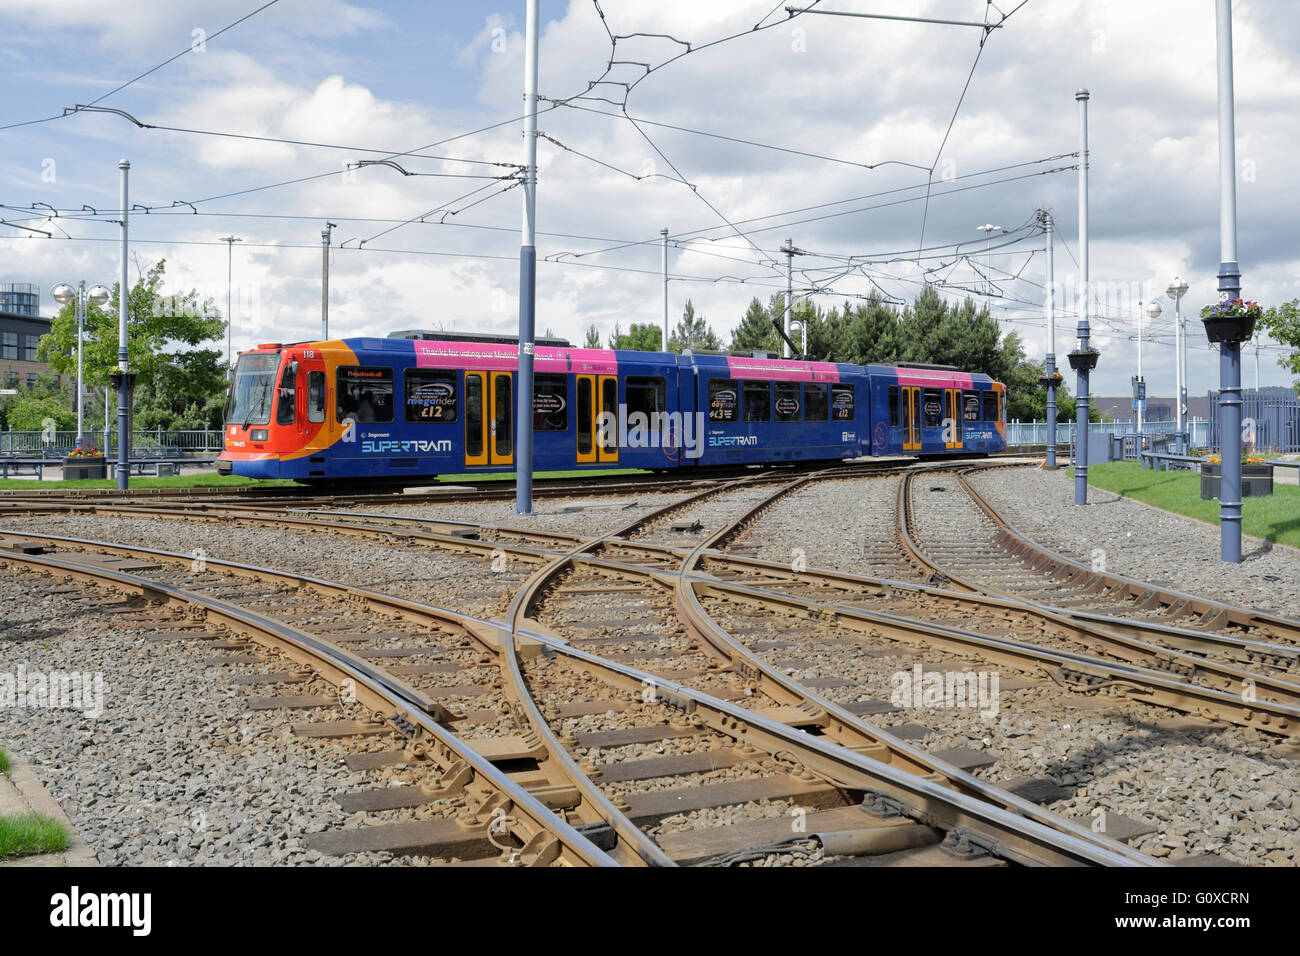 Sheffield Supertram 105. Meadowhall. 5th June 2013. | Flickr